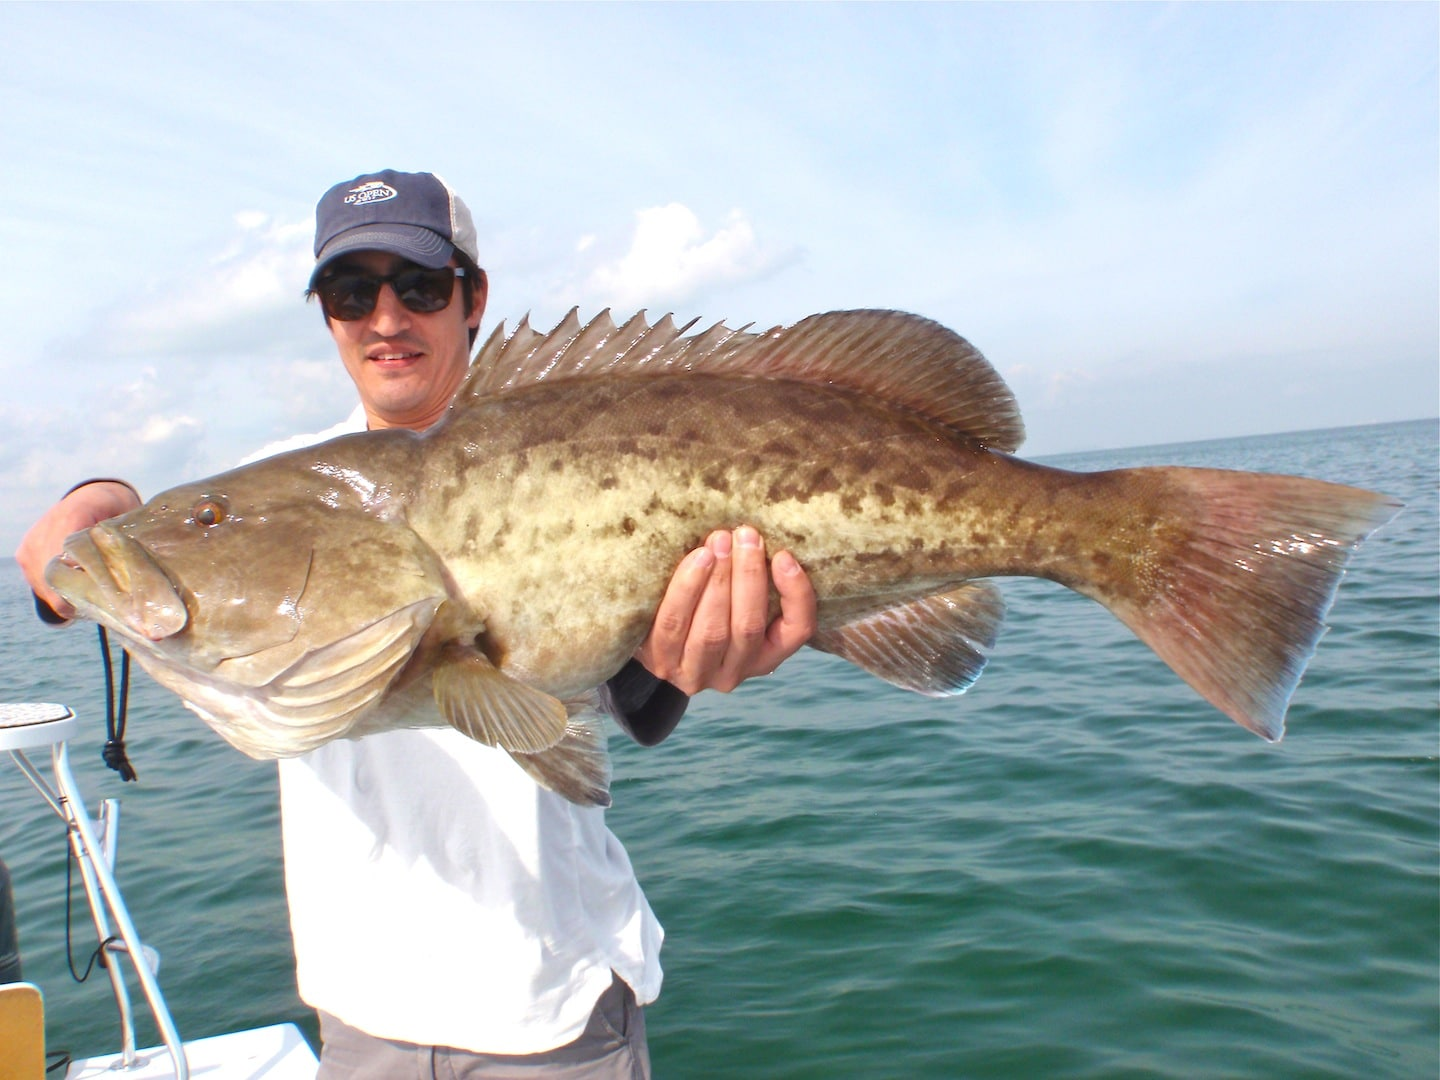 Biscayne bay grouper fishing flats fishing guide and for Biscayne bay fishing